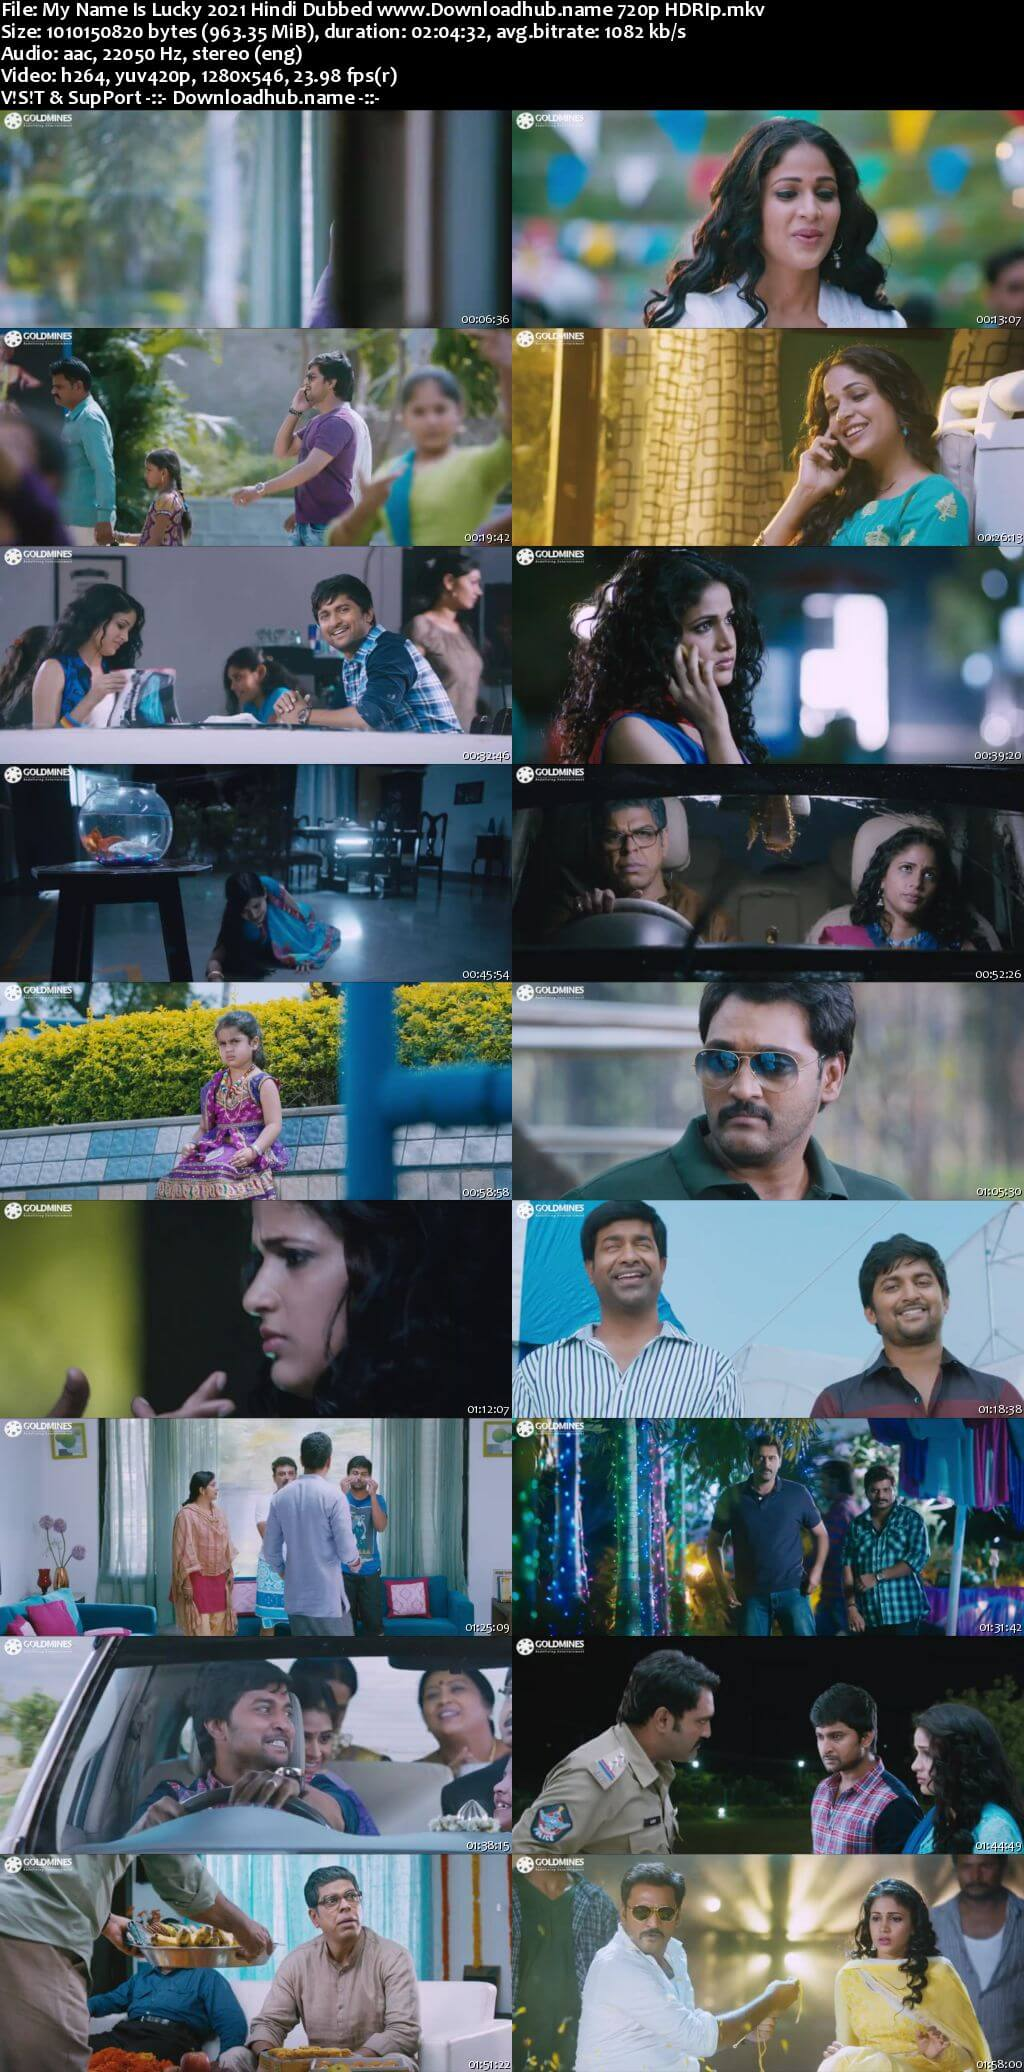 My Name Is Lucky 2021 Hindi Dubbed 720p HDRip x264